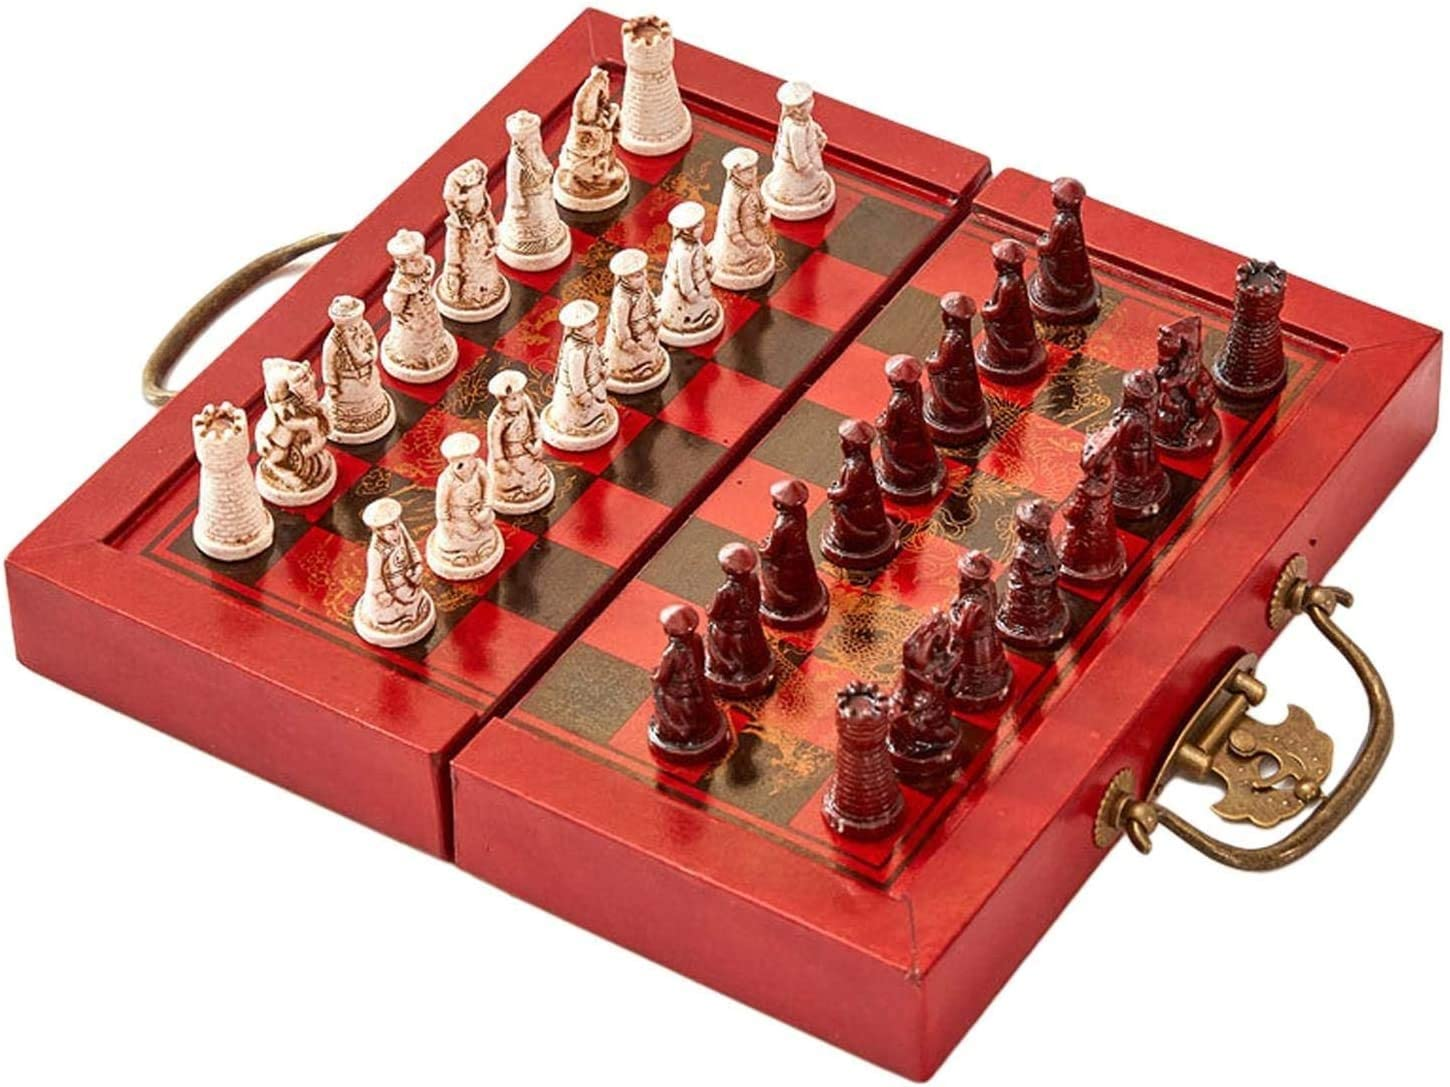 GXBCS Chess Set Portable Travel Kids Max 42% OFF for Board Charlotte Mall Game Be